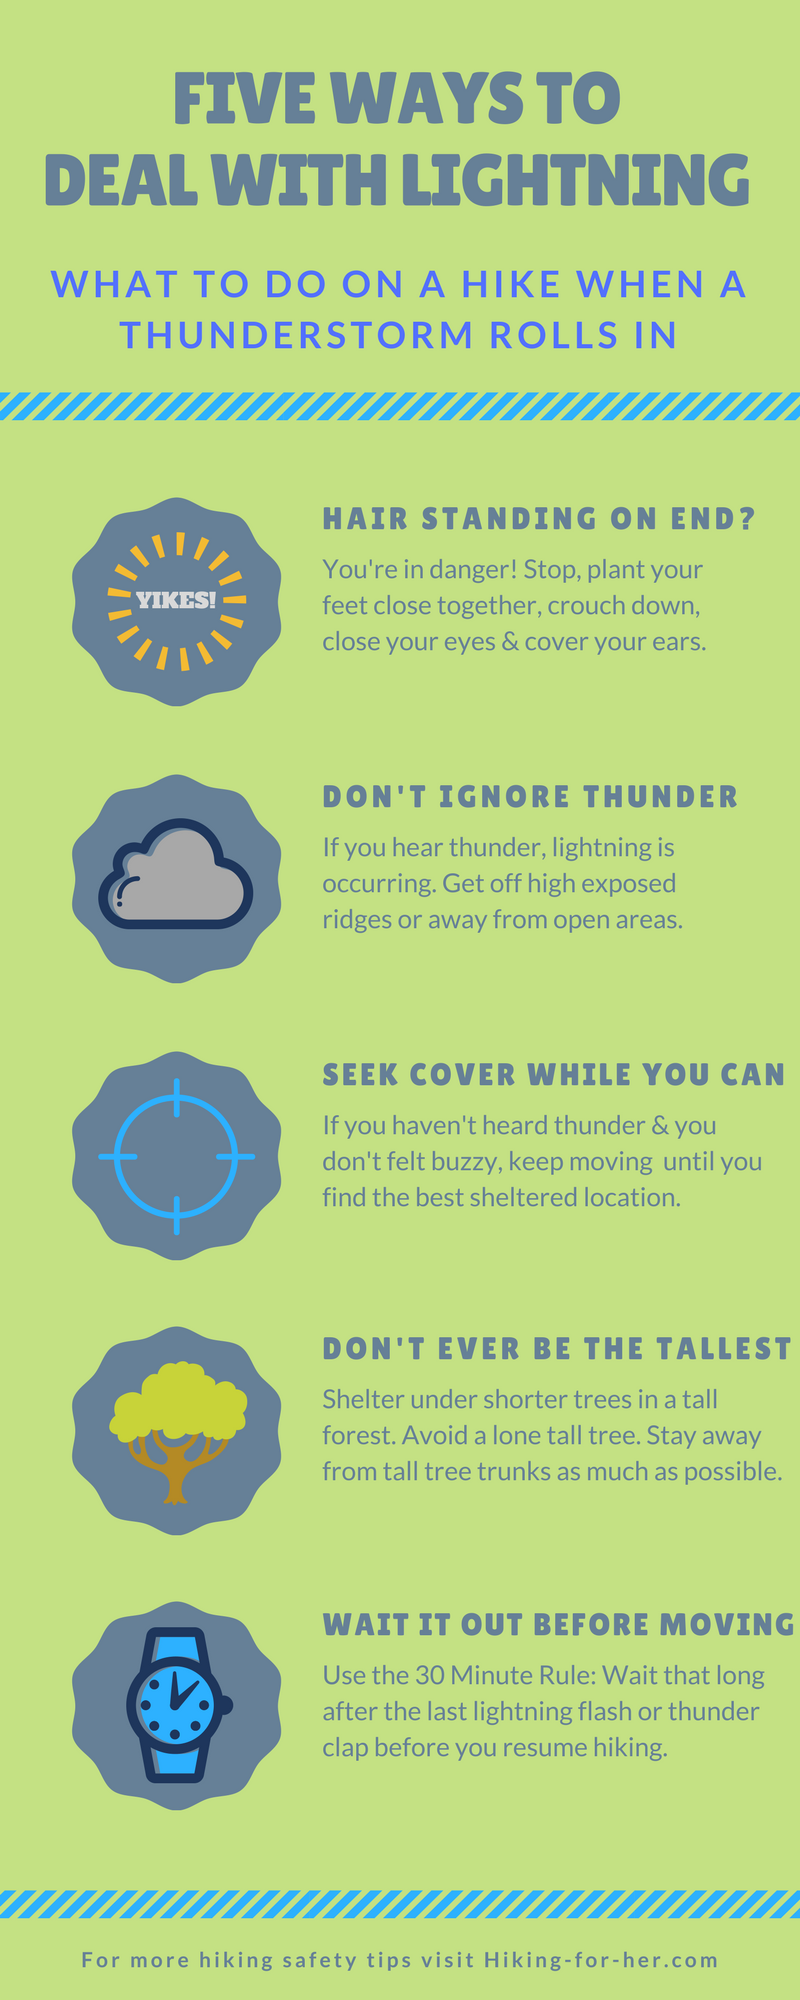 Wondering how to deal with lightning when you're hiking? Here's your answer, from Hiking For Her. #hiking #lightningsafety #outdoorsafety #backpacking #staysafeoutside